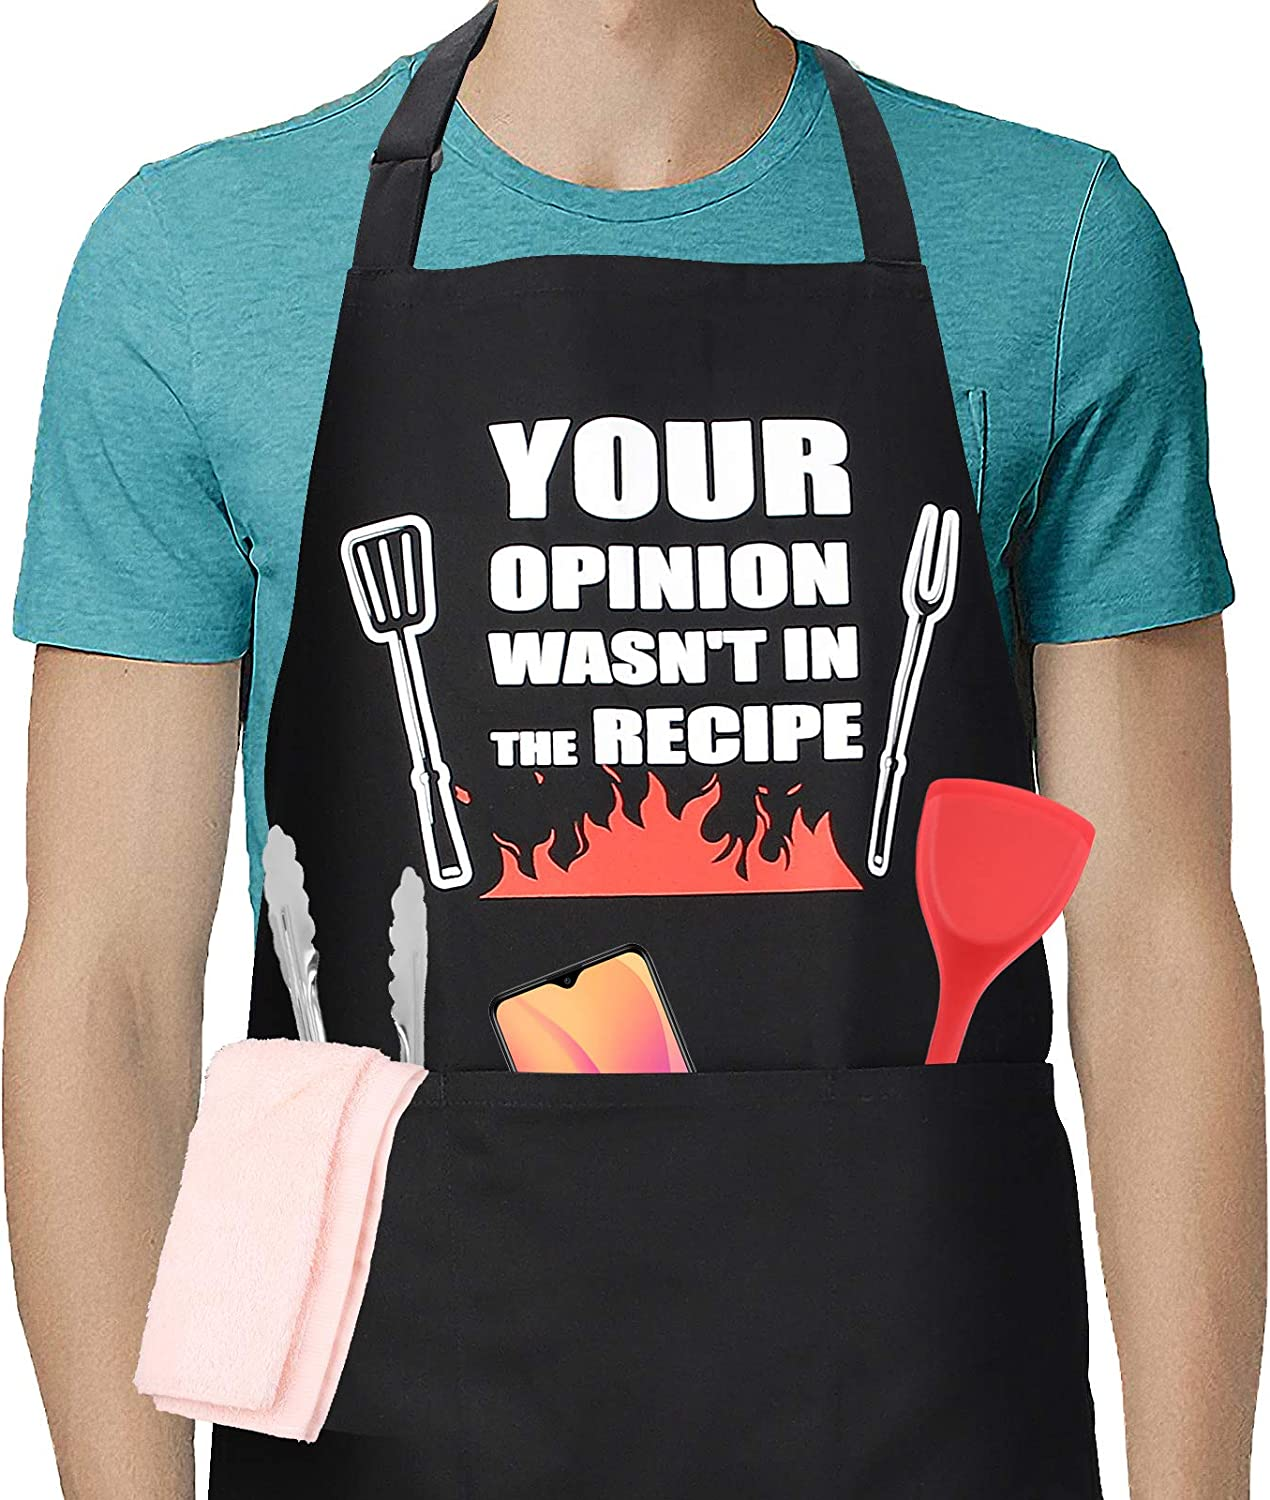 Funny Aprons for Men Women with 3 Pockets Unique BBQ Grilling Cooking Gifts